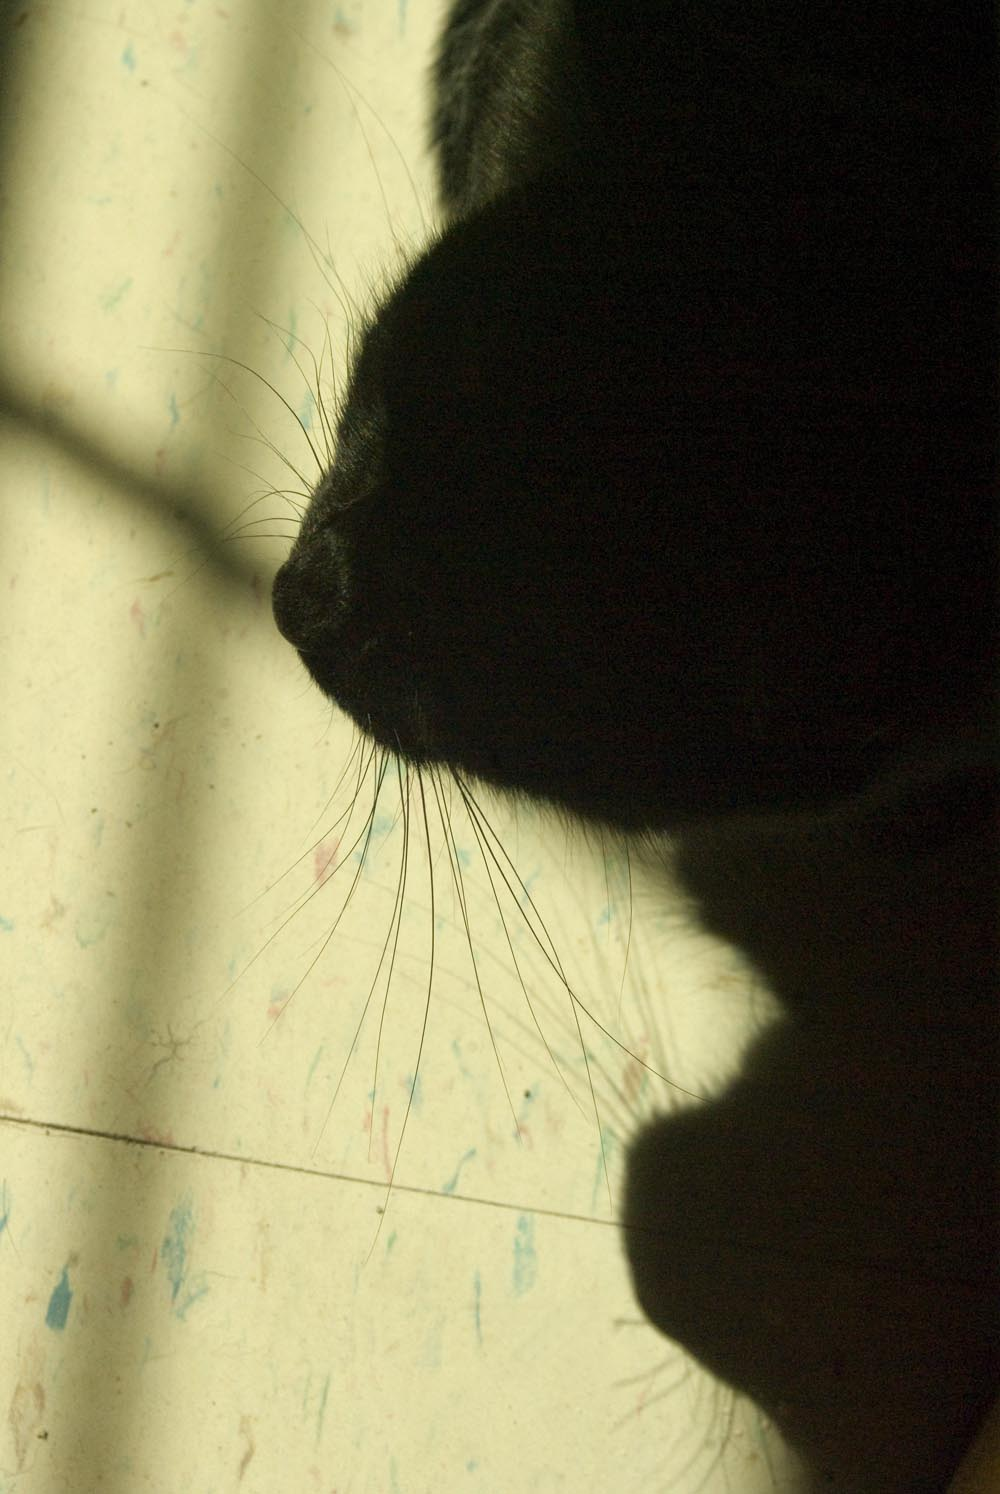 photo of cat's nose and whiskers and shadow